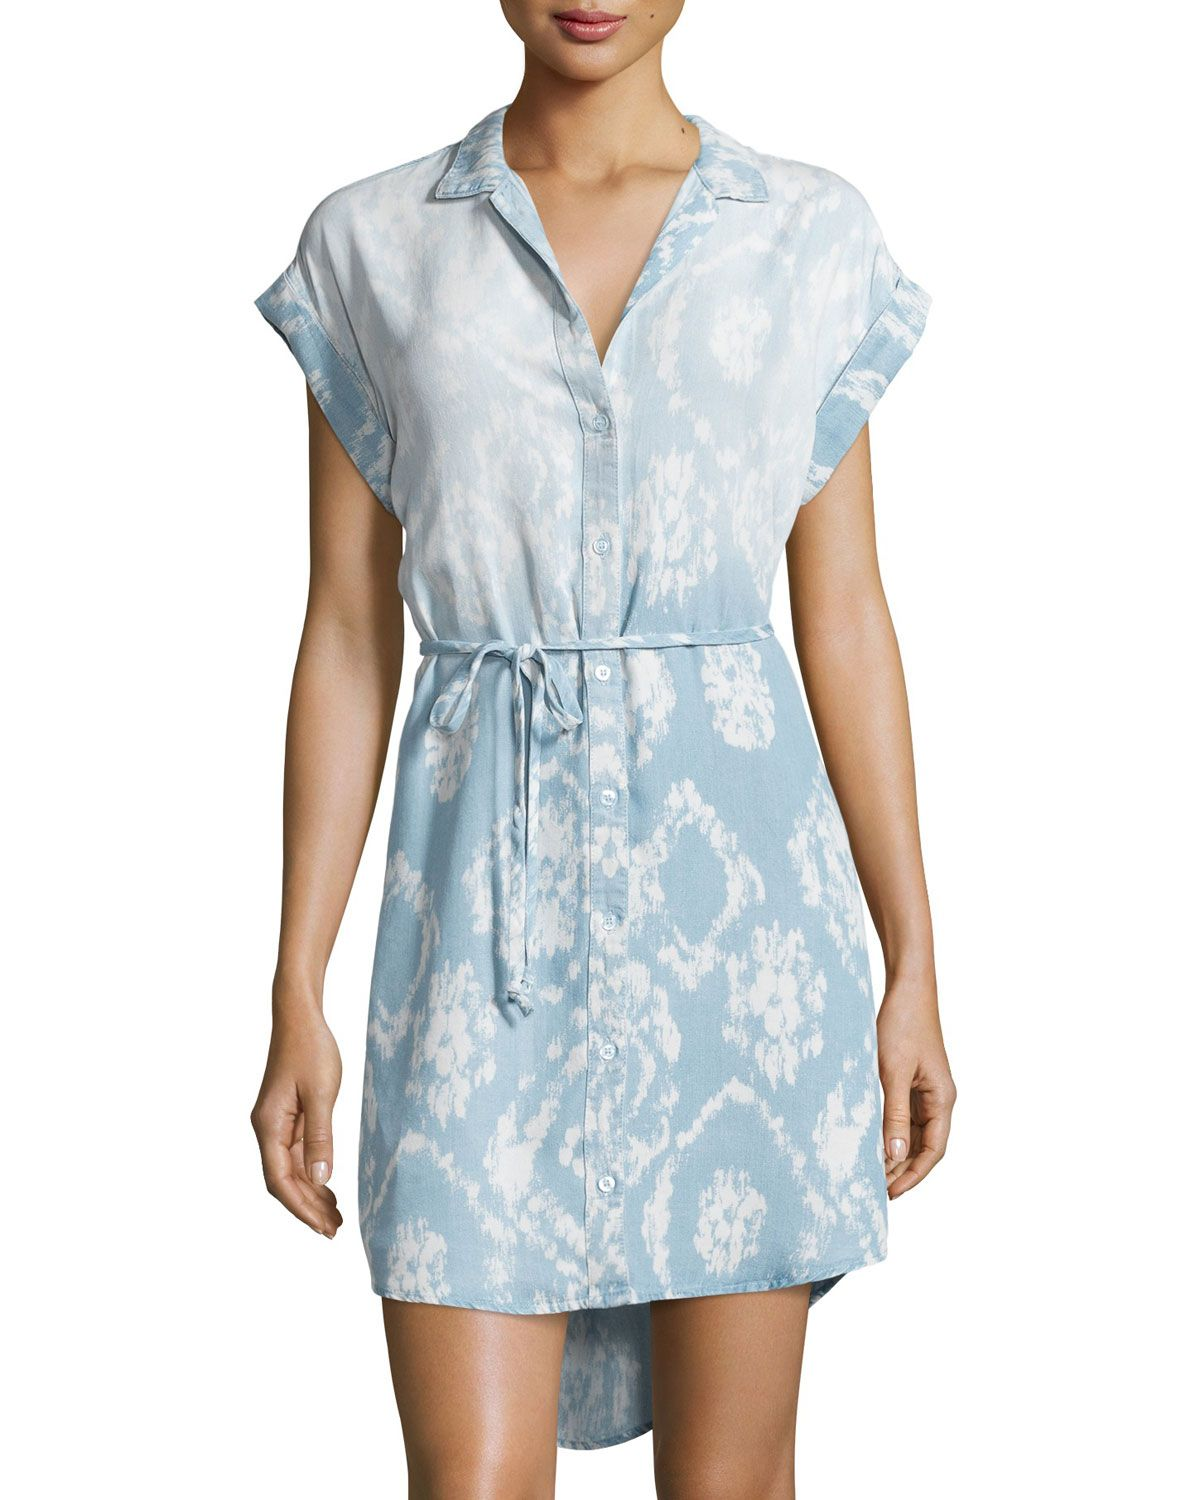 Chelsea & Theodore Printed Button-Front Shirtdress, Light Blue, Women's, Size: S